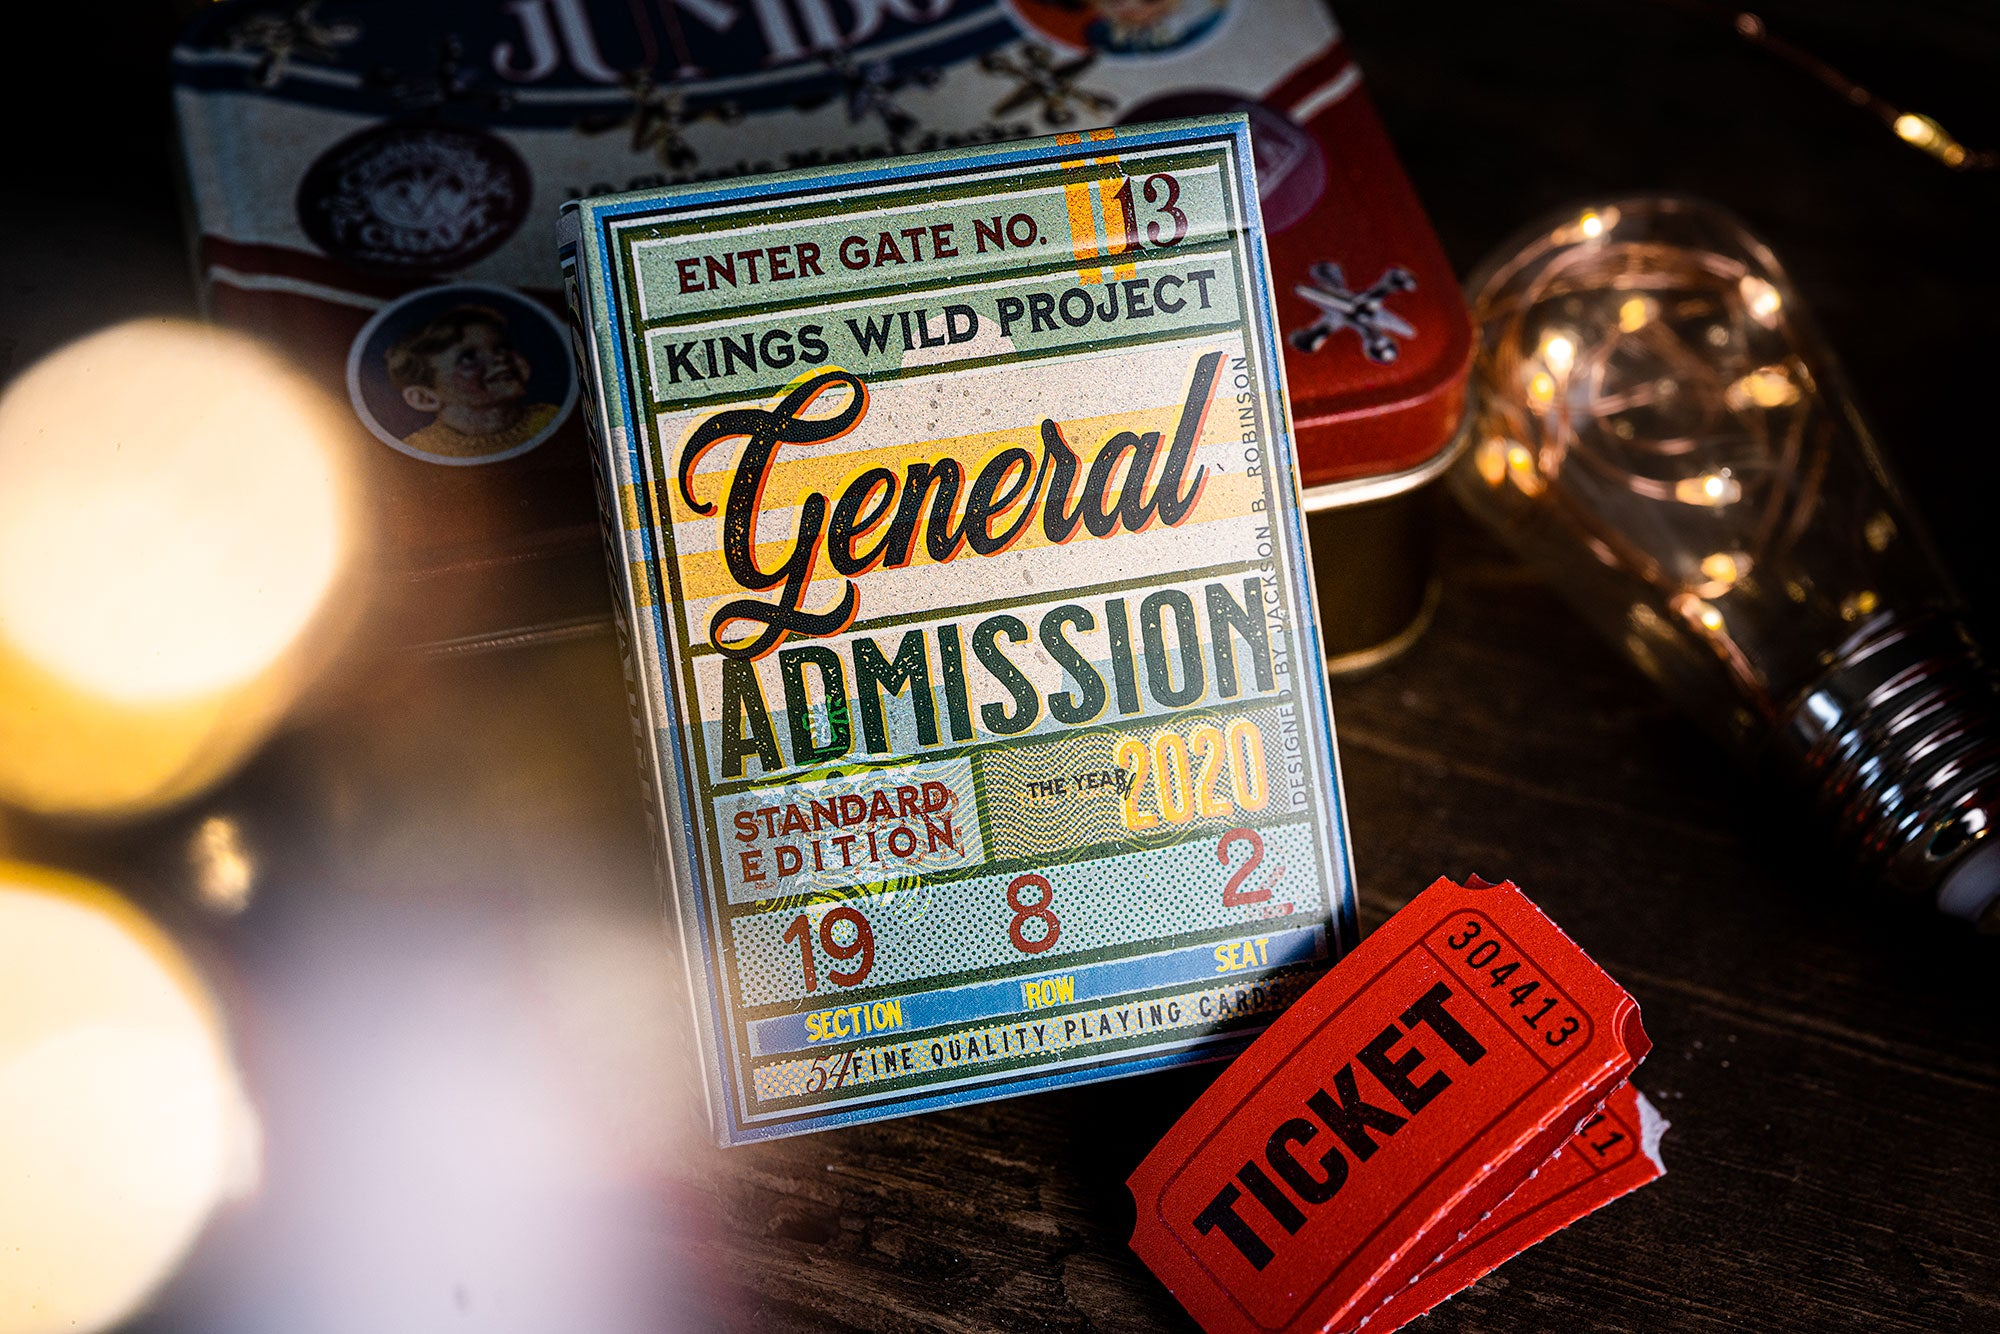 General Admission - Standard Edition